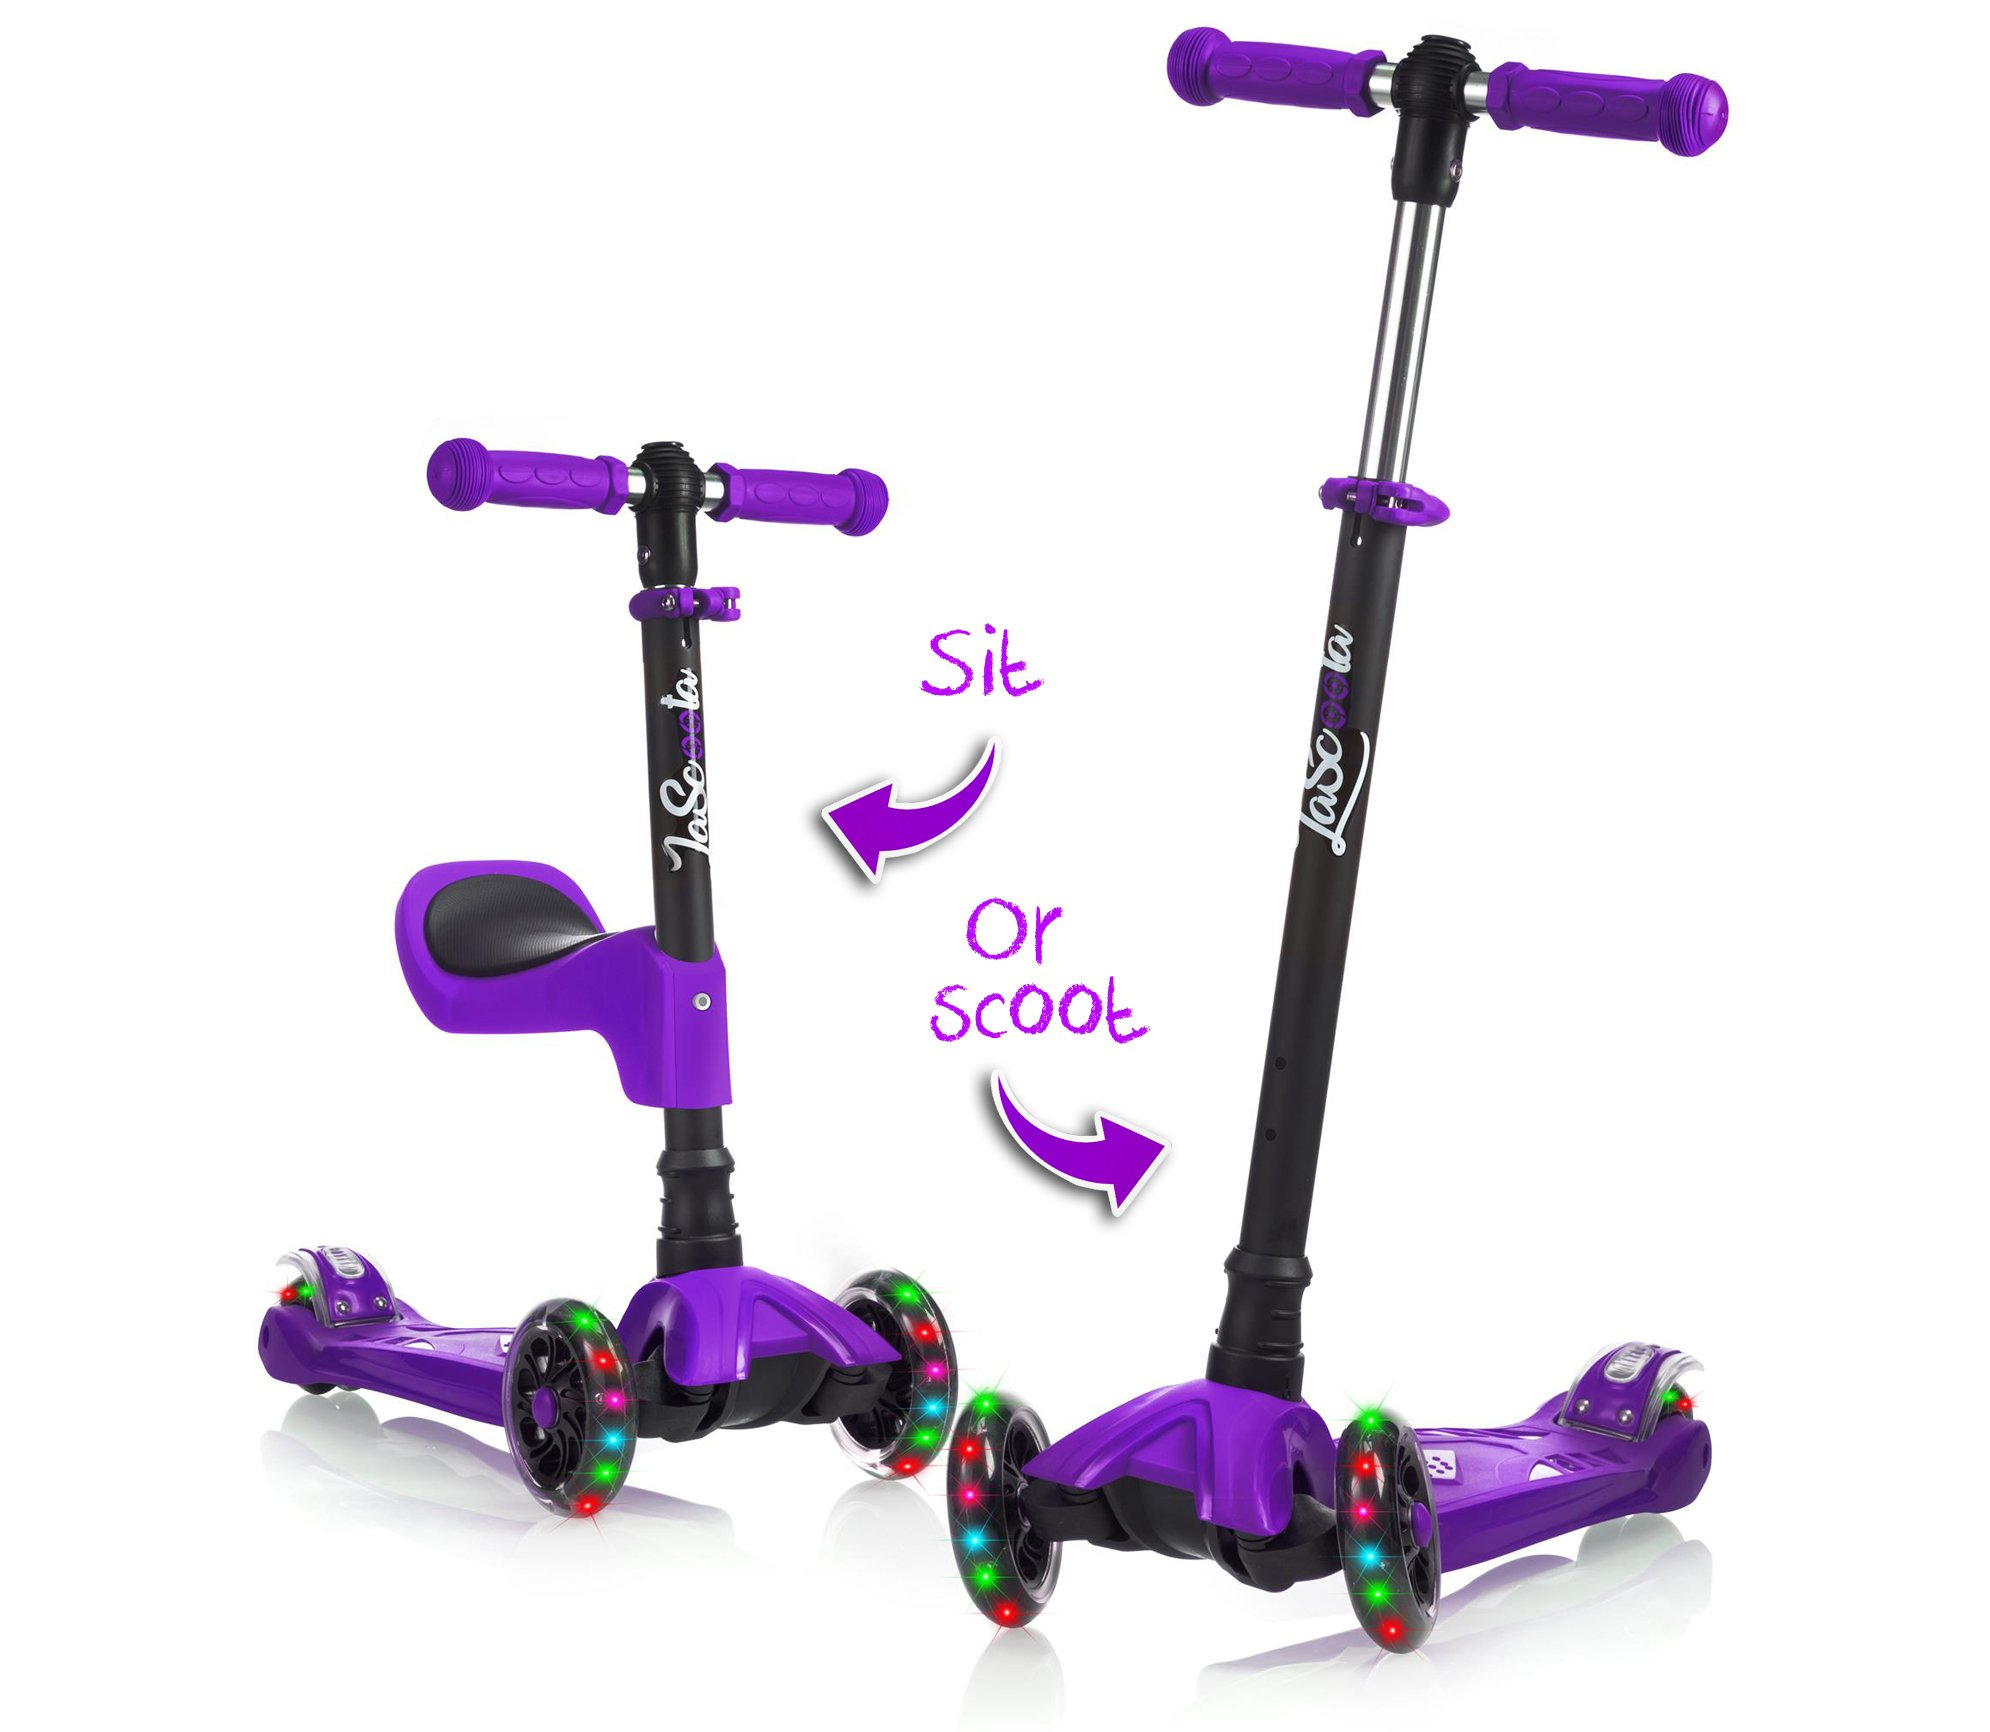 LaScoota 2-in-1 Kick Scooter with Removable Seat great for kids & toddlers Girls or boys – Adjustable Height w/Extra-wide Deck PU Flashing Wheels for Children from 2 to 14 Year-Old (Purple)